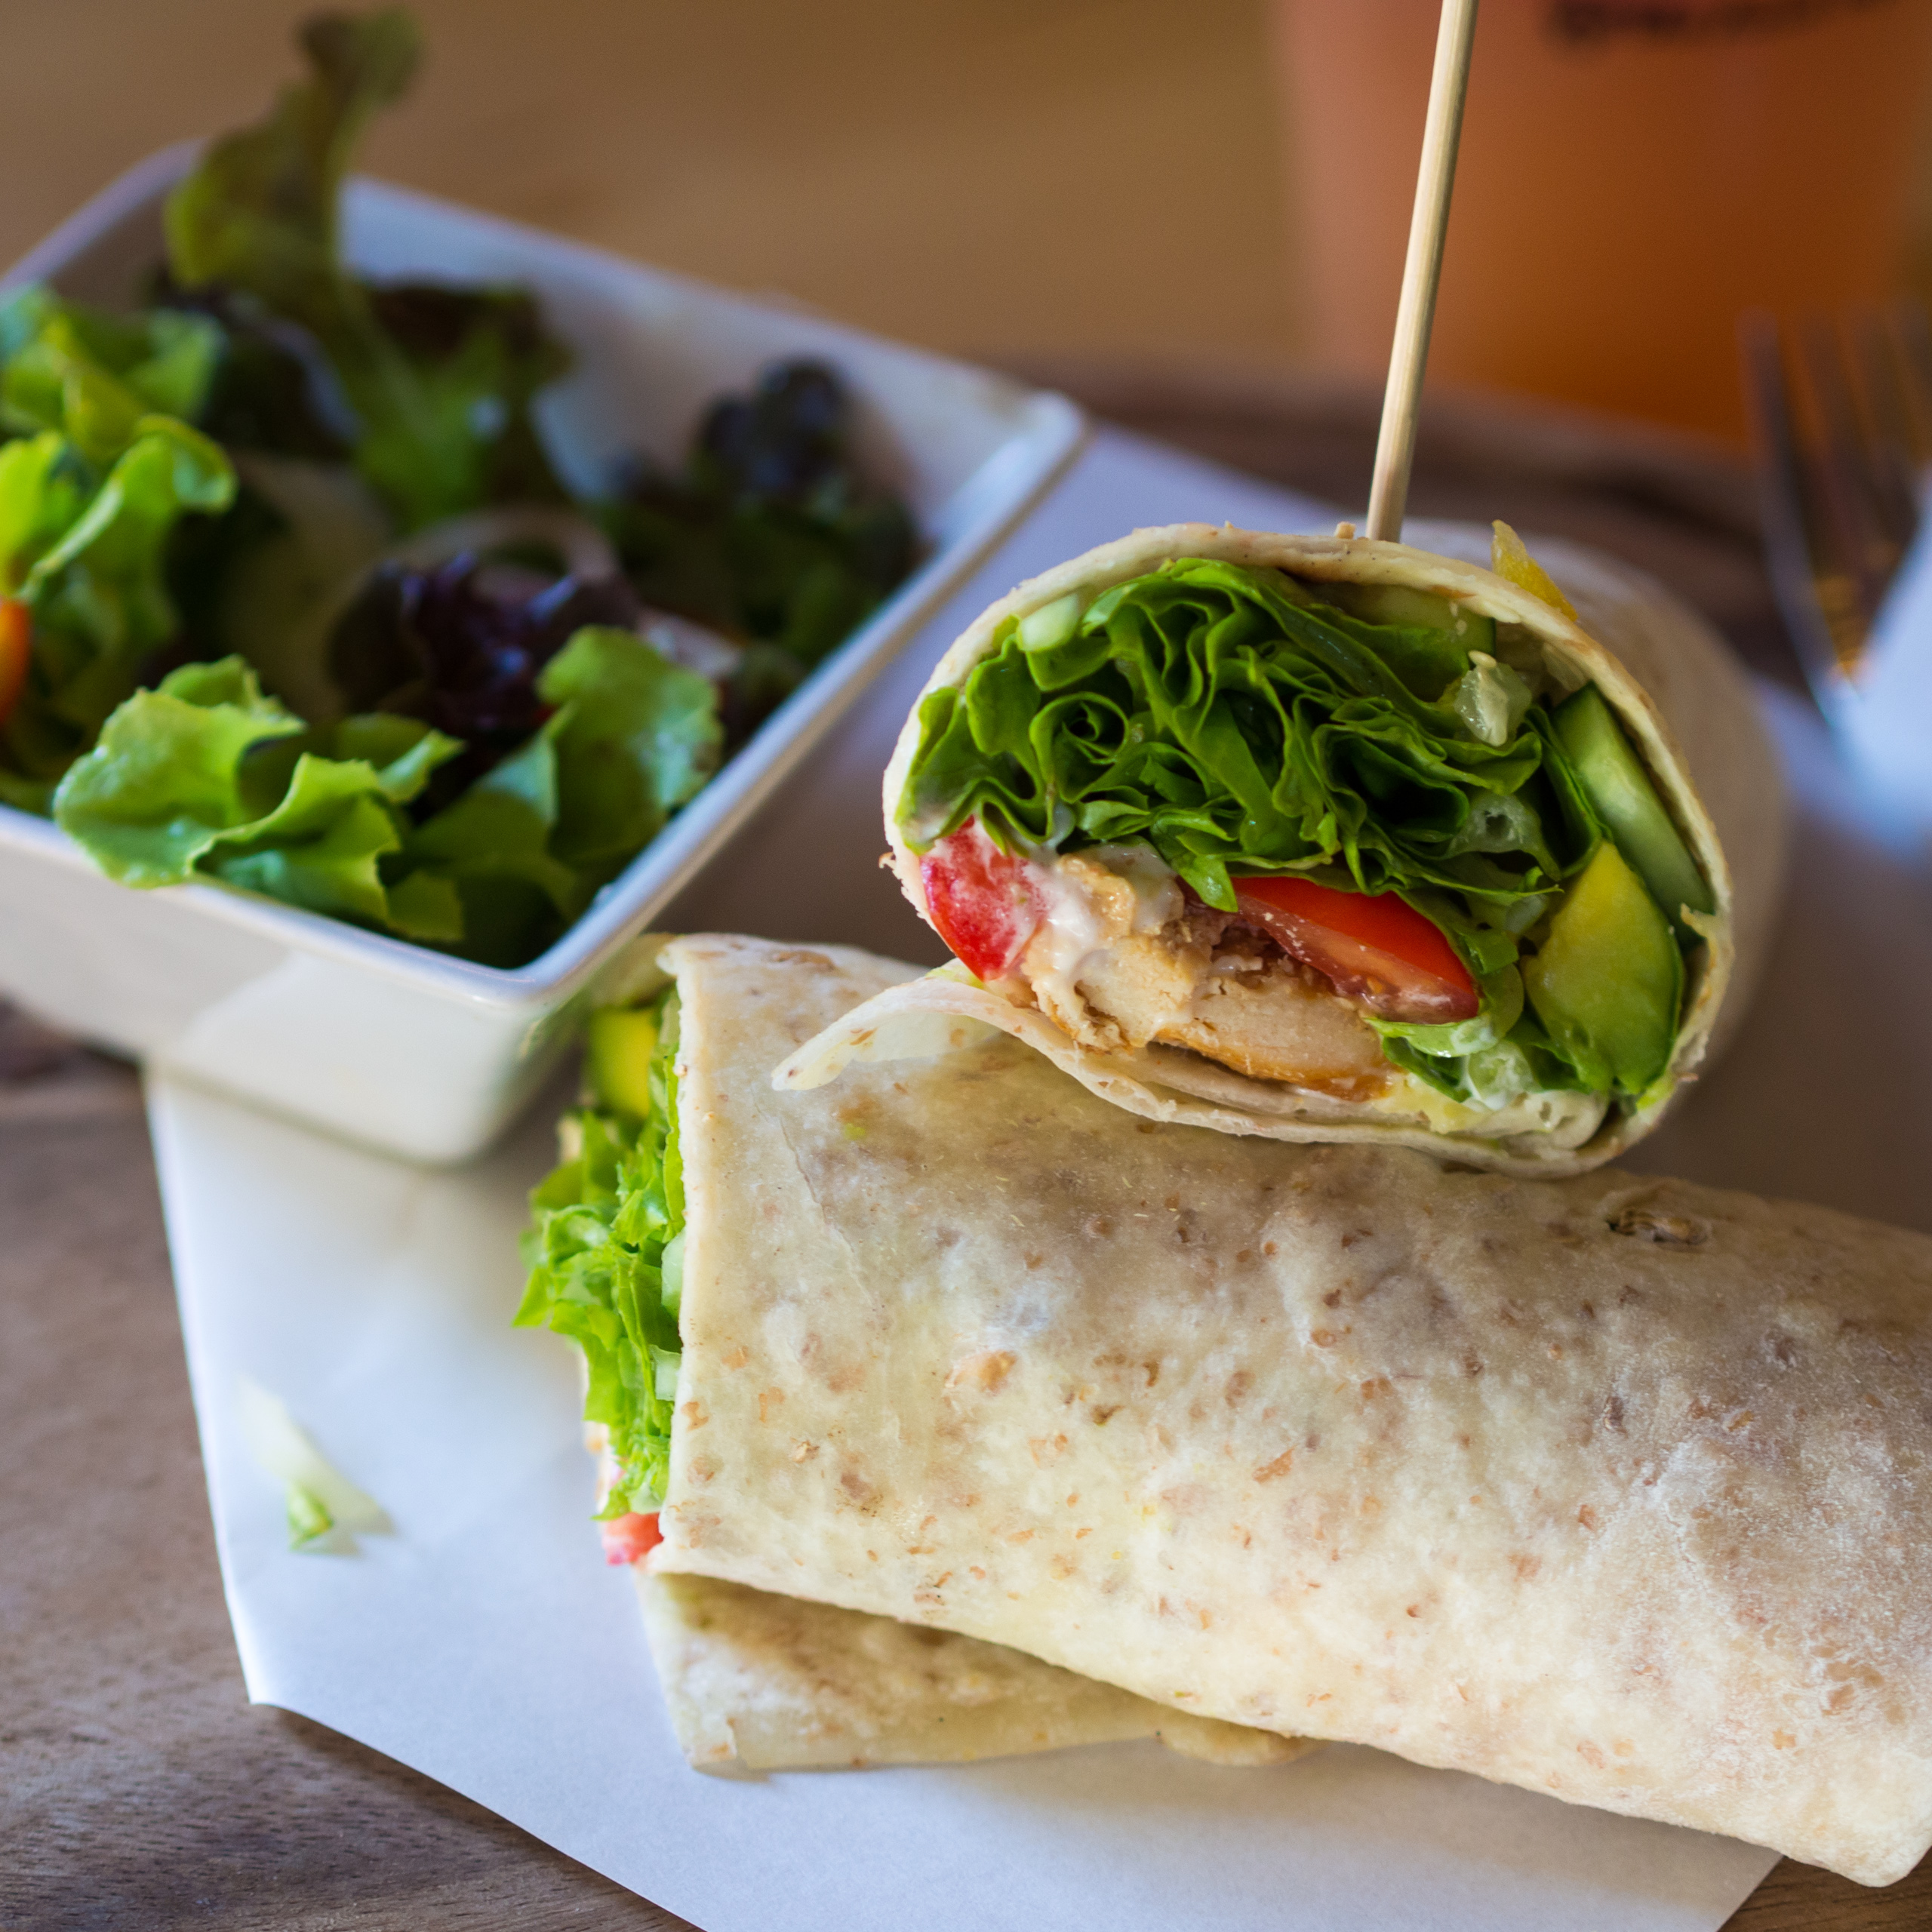 Gesundes Fast-Food: Leckerer Chicken Wrap!